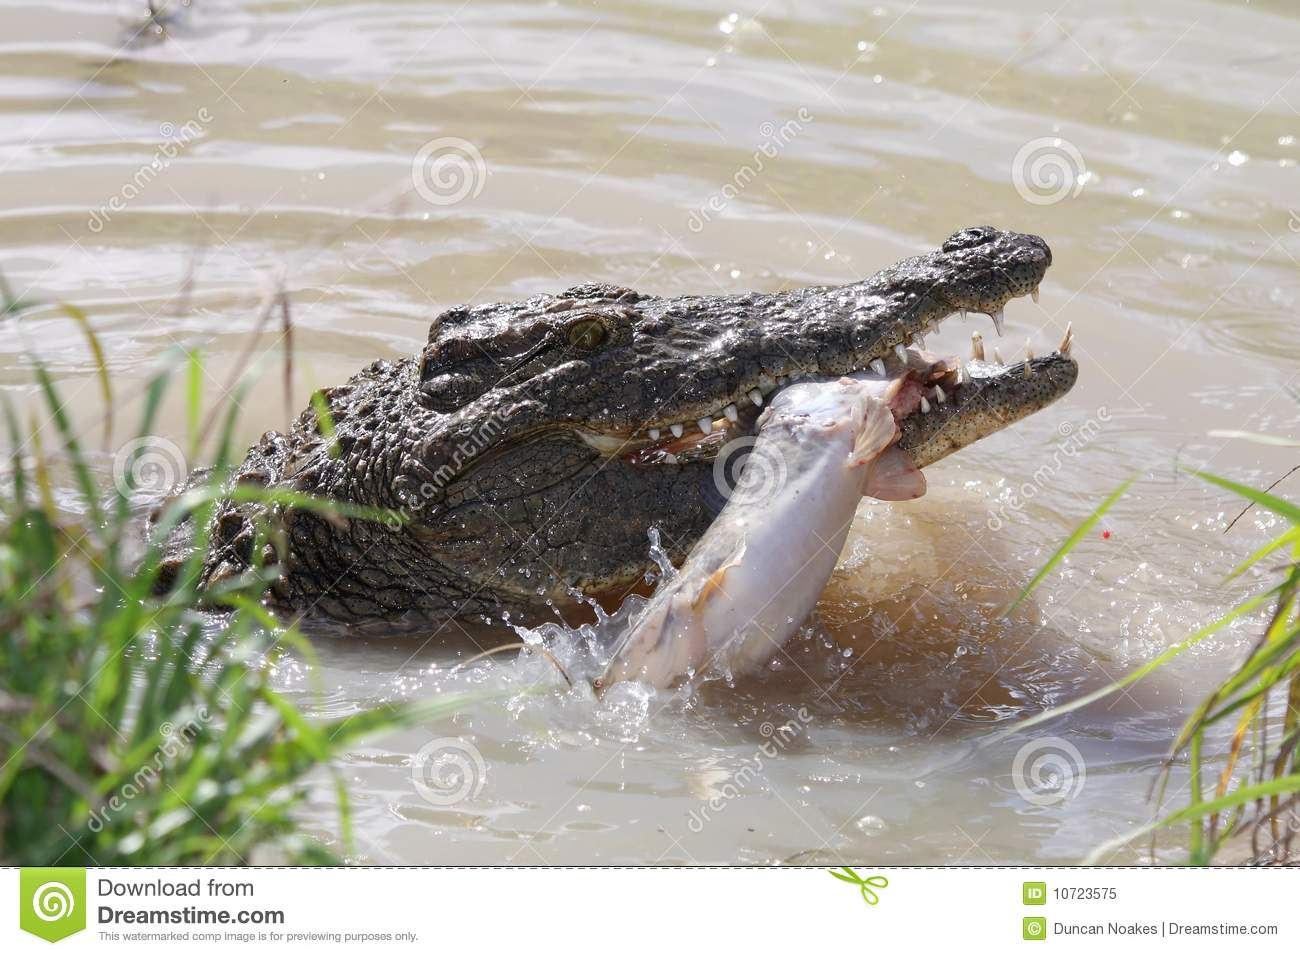 Crocodile catching fish stock image image of eating for Dreaming of eating fish